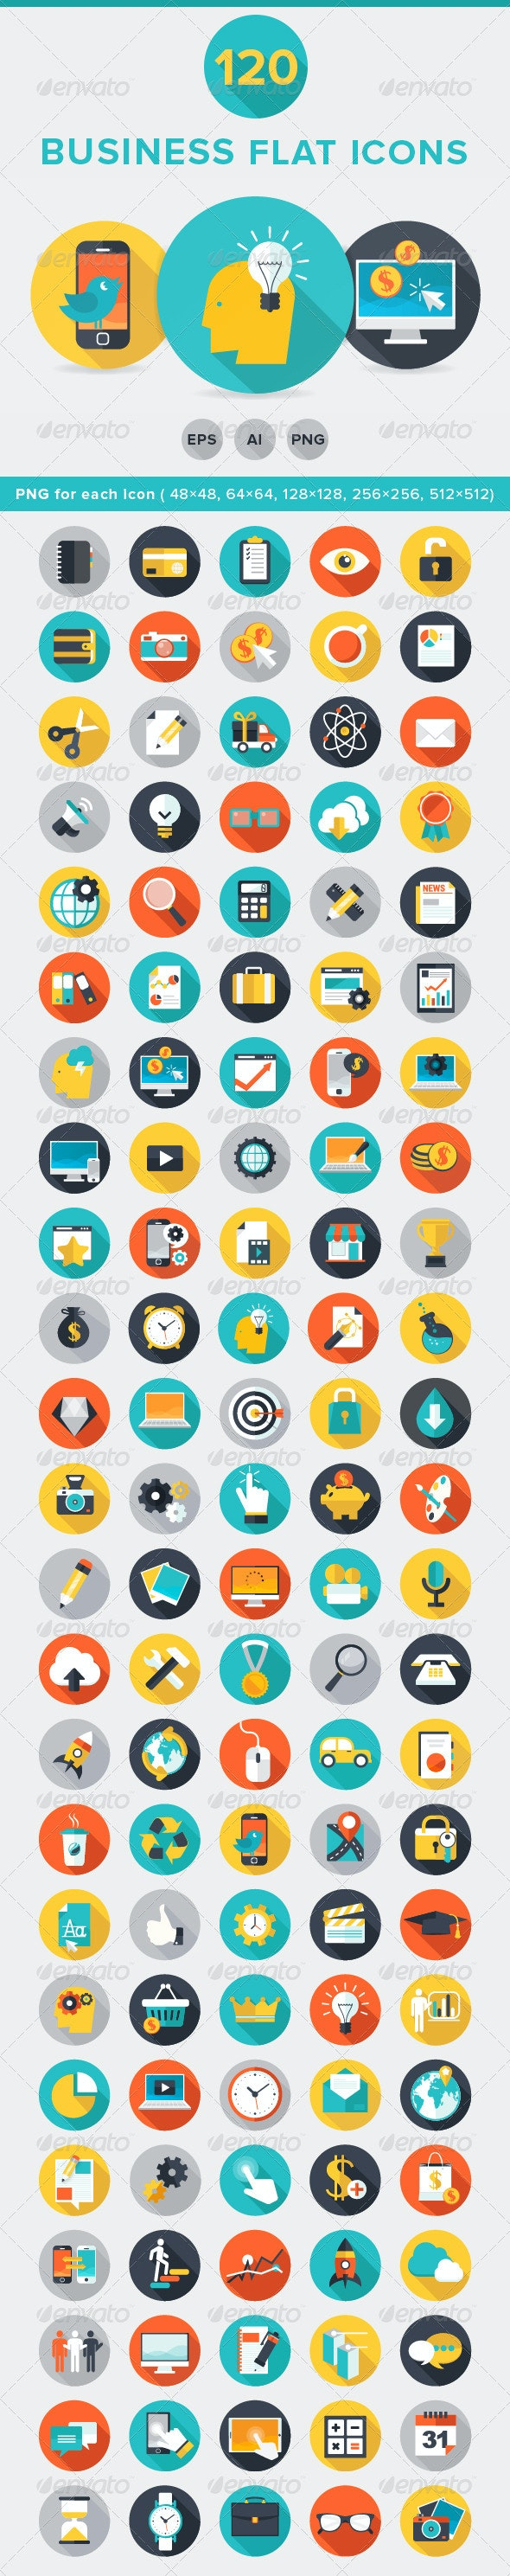 120 Business Flat Icons  - Business Icons